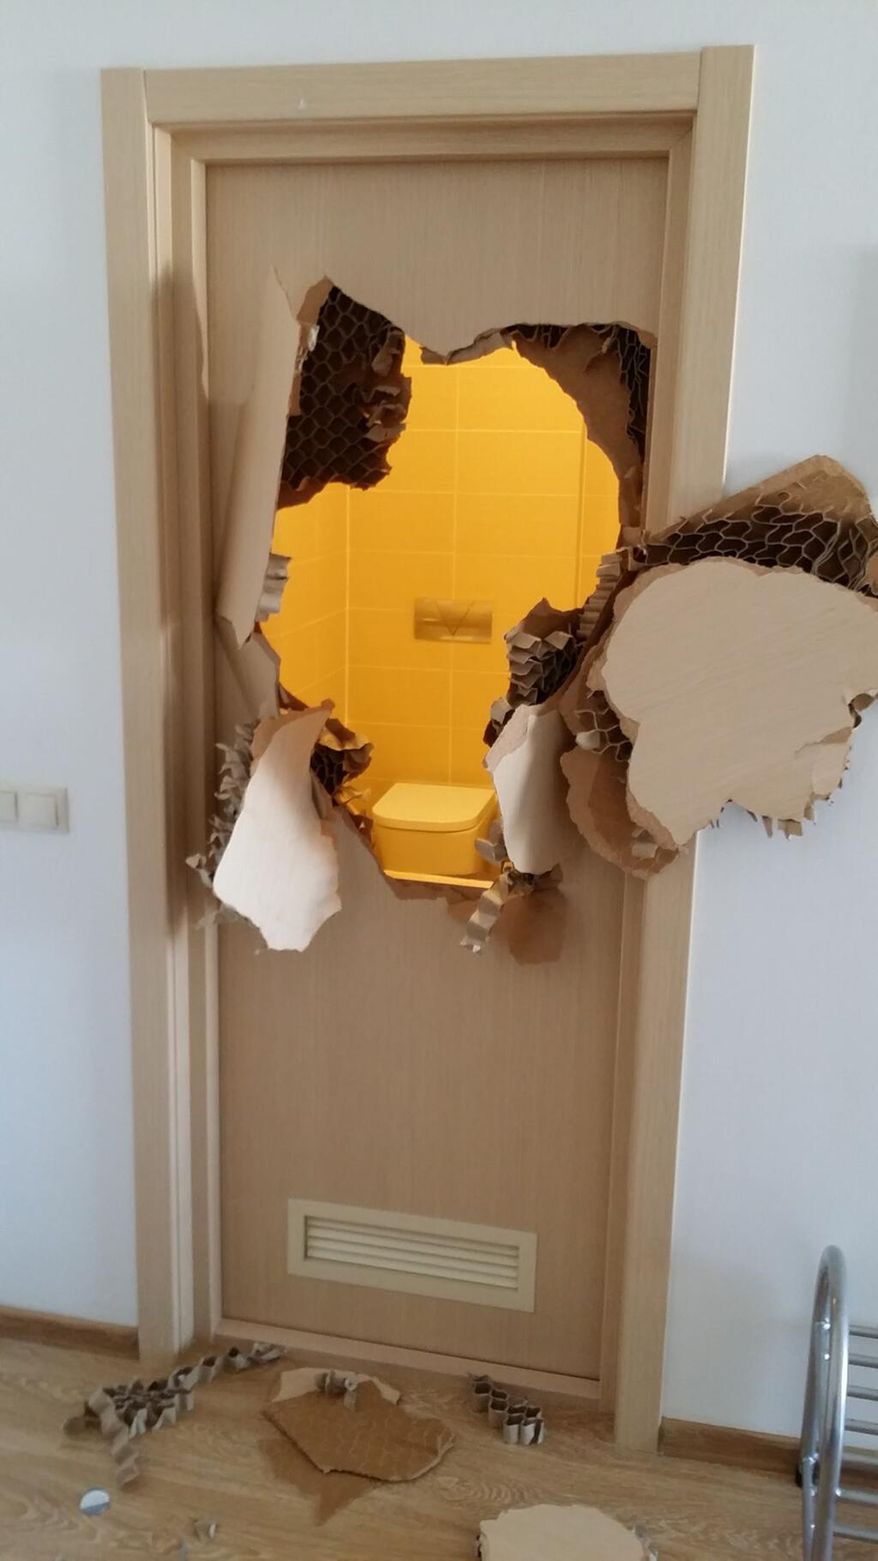 This photo provided by bobsledder Johnny Quinn of the United States shows a door he broke through after realizing he was locked in a bathroom inside the athlete's village, during the 2014 Winter Olympics, in Sochi, Russia. An unknown during stints in the NFL with Green Bay and Buffalo, Quinn literally burst onto the world's stage last week after he tweeted the photo on Feb. 8, 2014.  (AP Photo/Johnny Quinn)